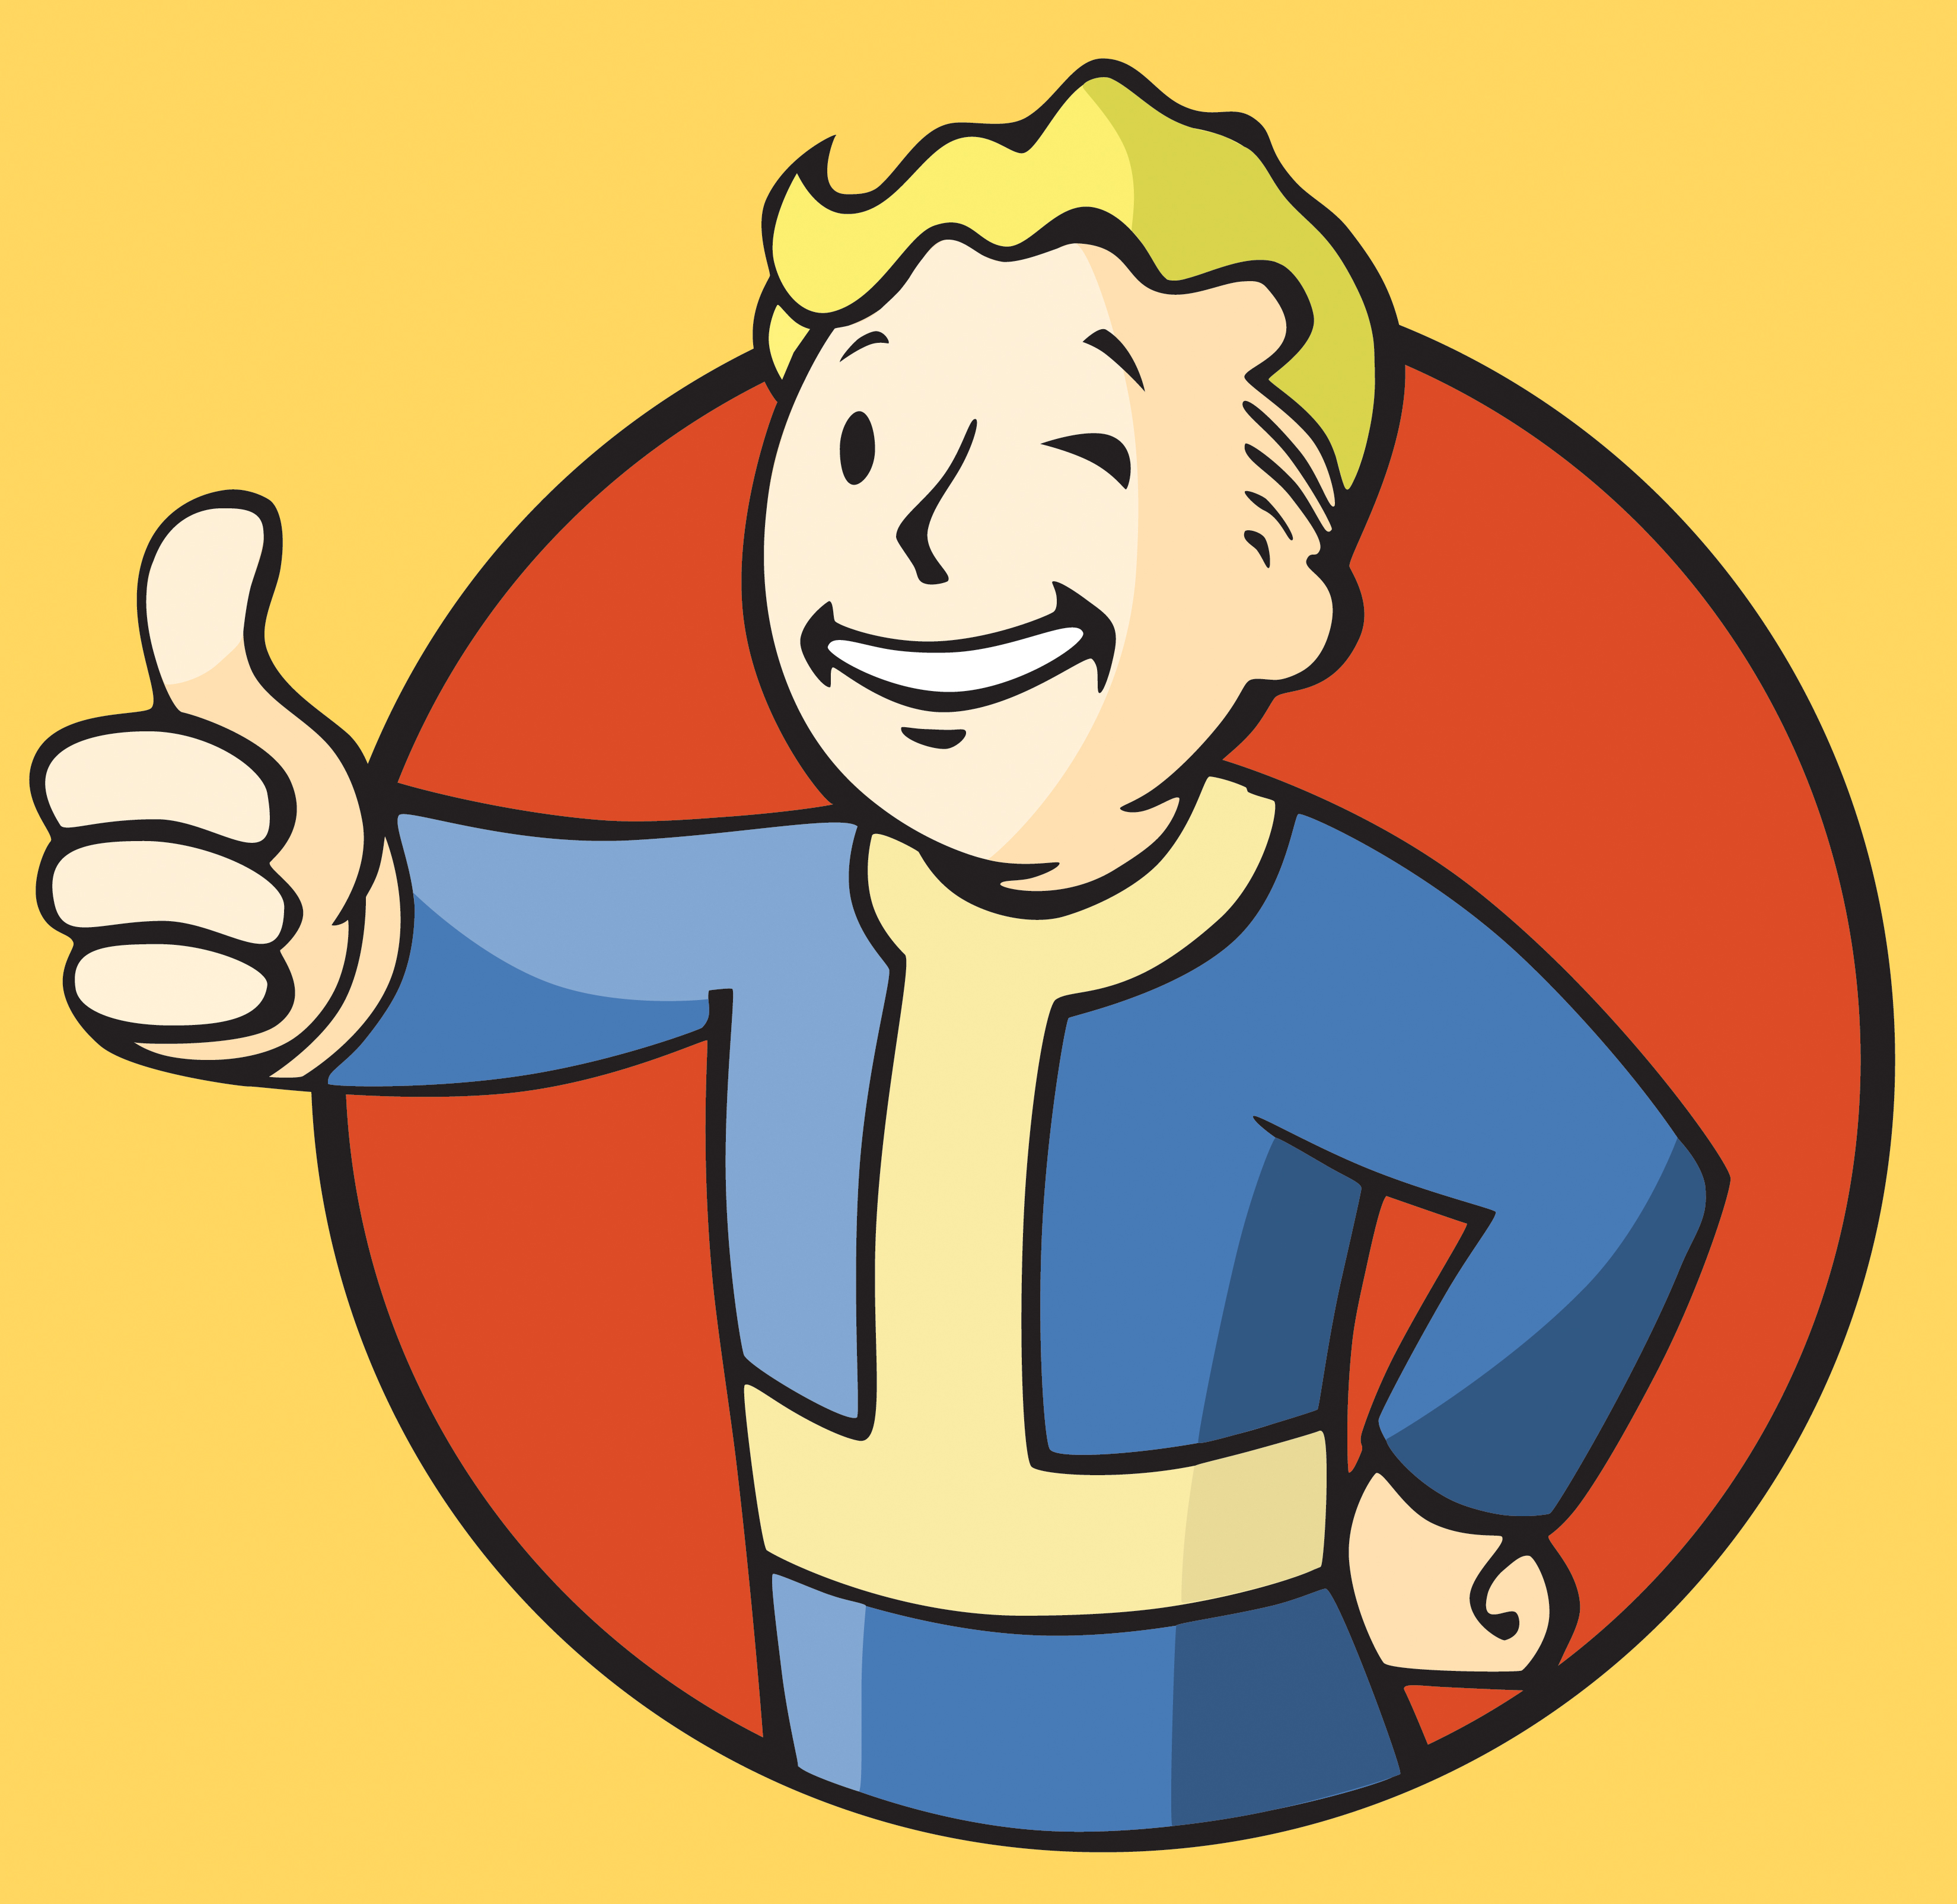 Free Download Vault Boy Vector By Bawarner 3300x3210 For Your